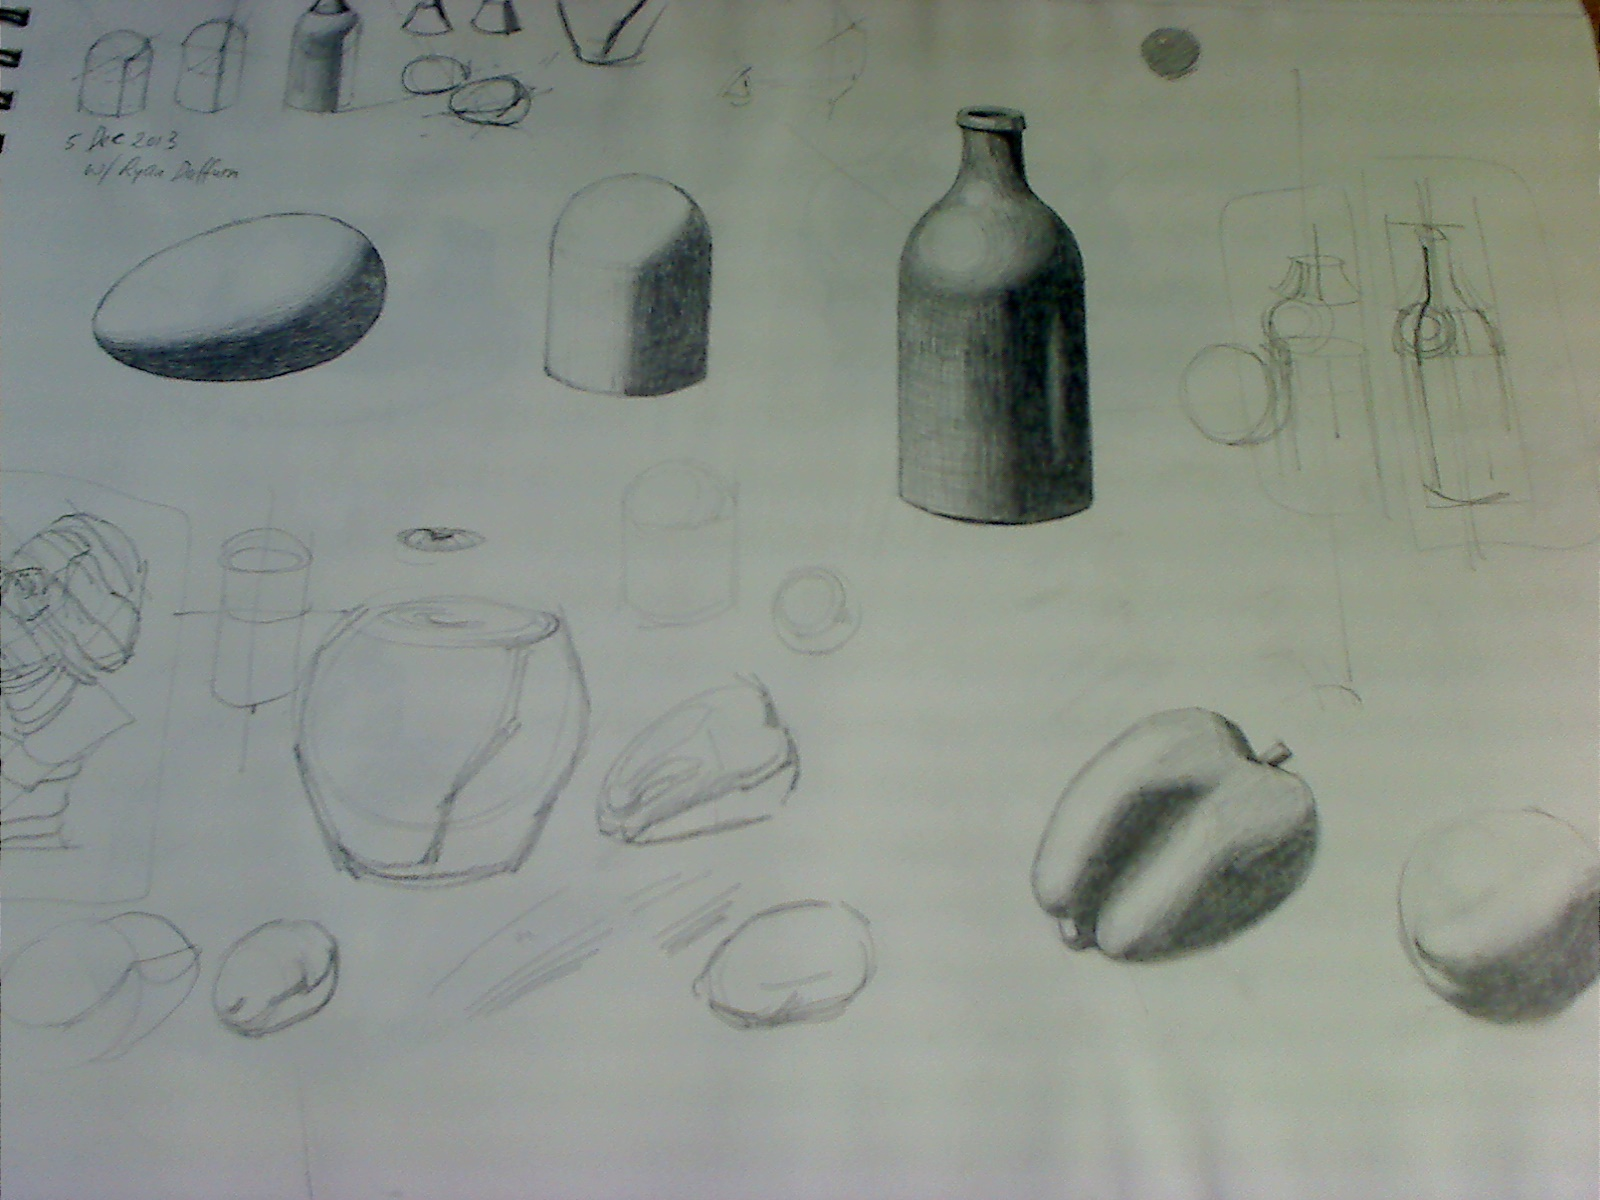 Tonal drawing studies of simple forms